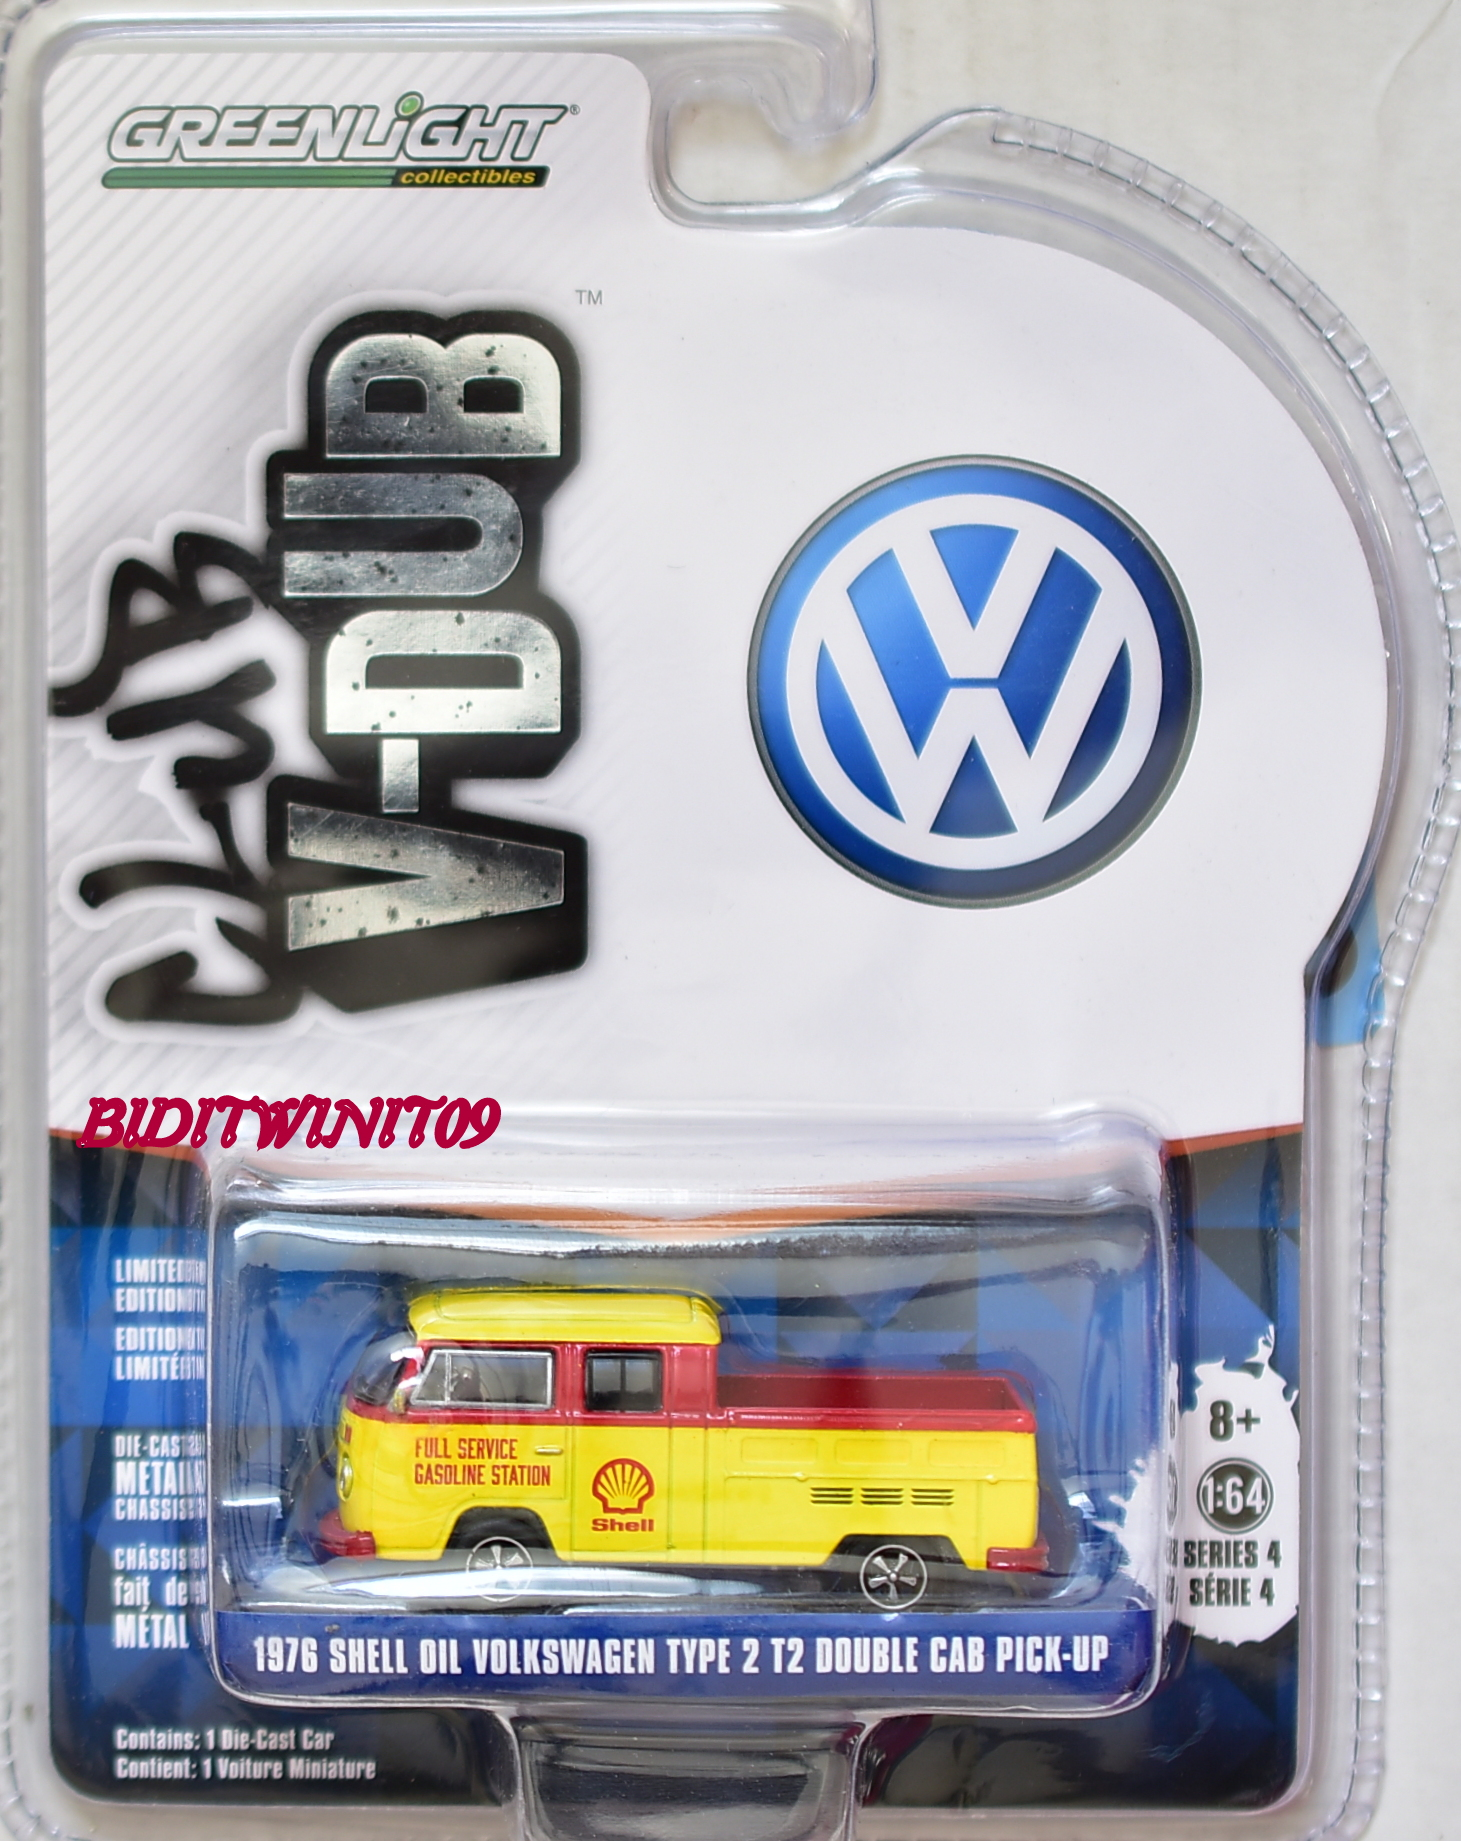 GREENLIGHT CLUB V-DUB 1976 SELL OIL VOLKSWAGEN TYPE 2 T2 DOUBLE CAB PICK-UP